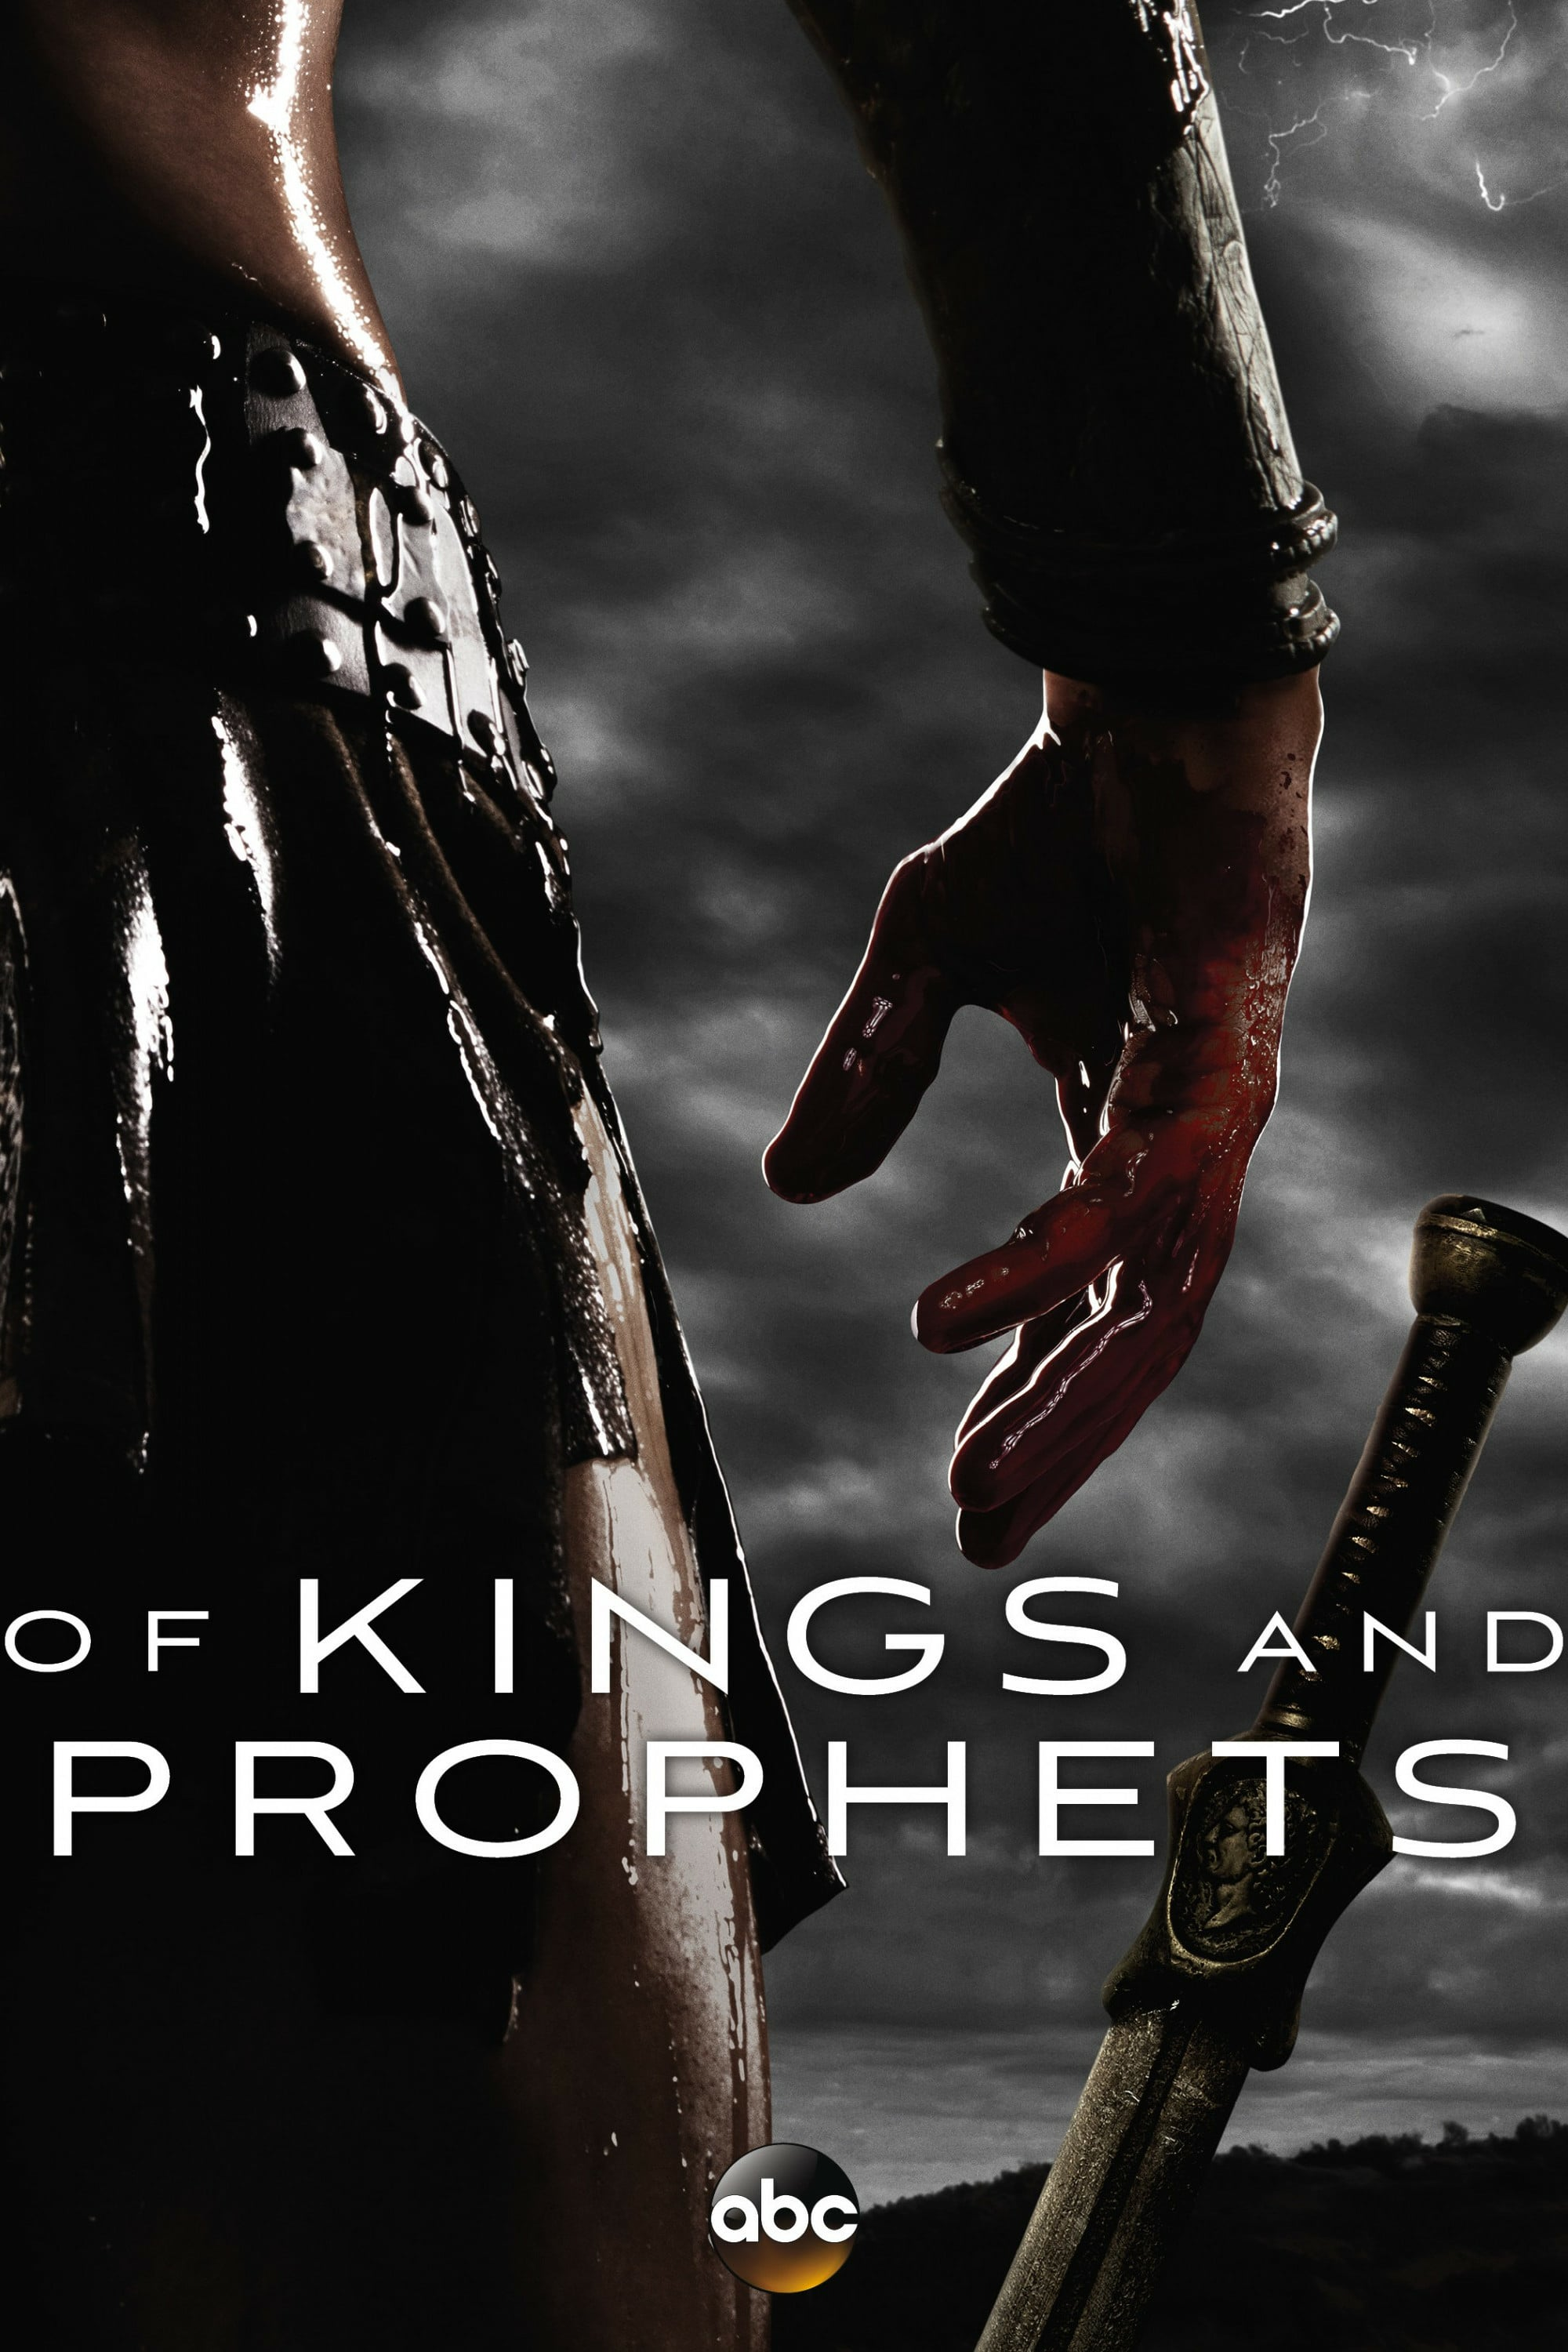 Of Kings and Prophets' />